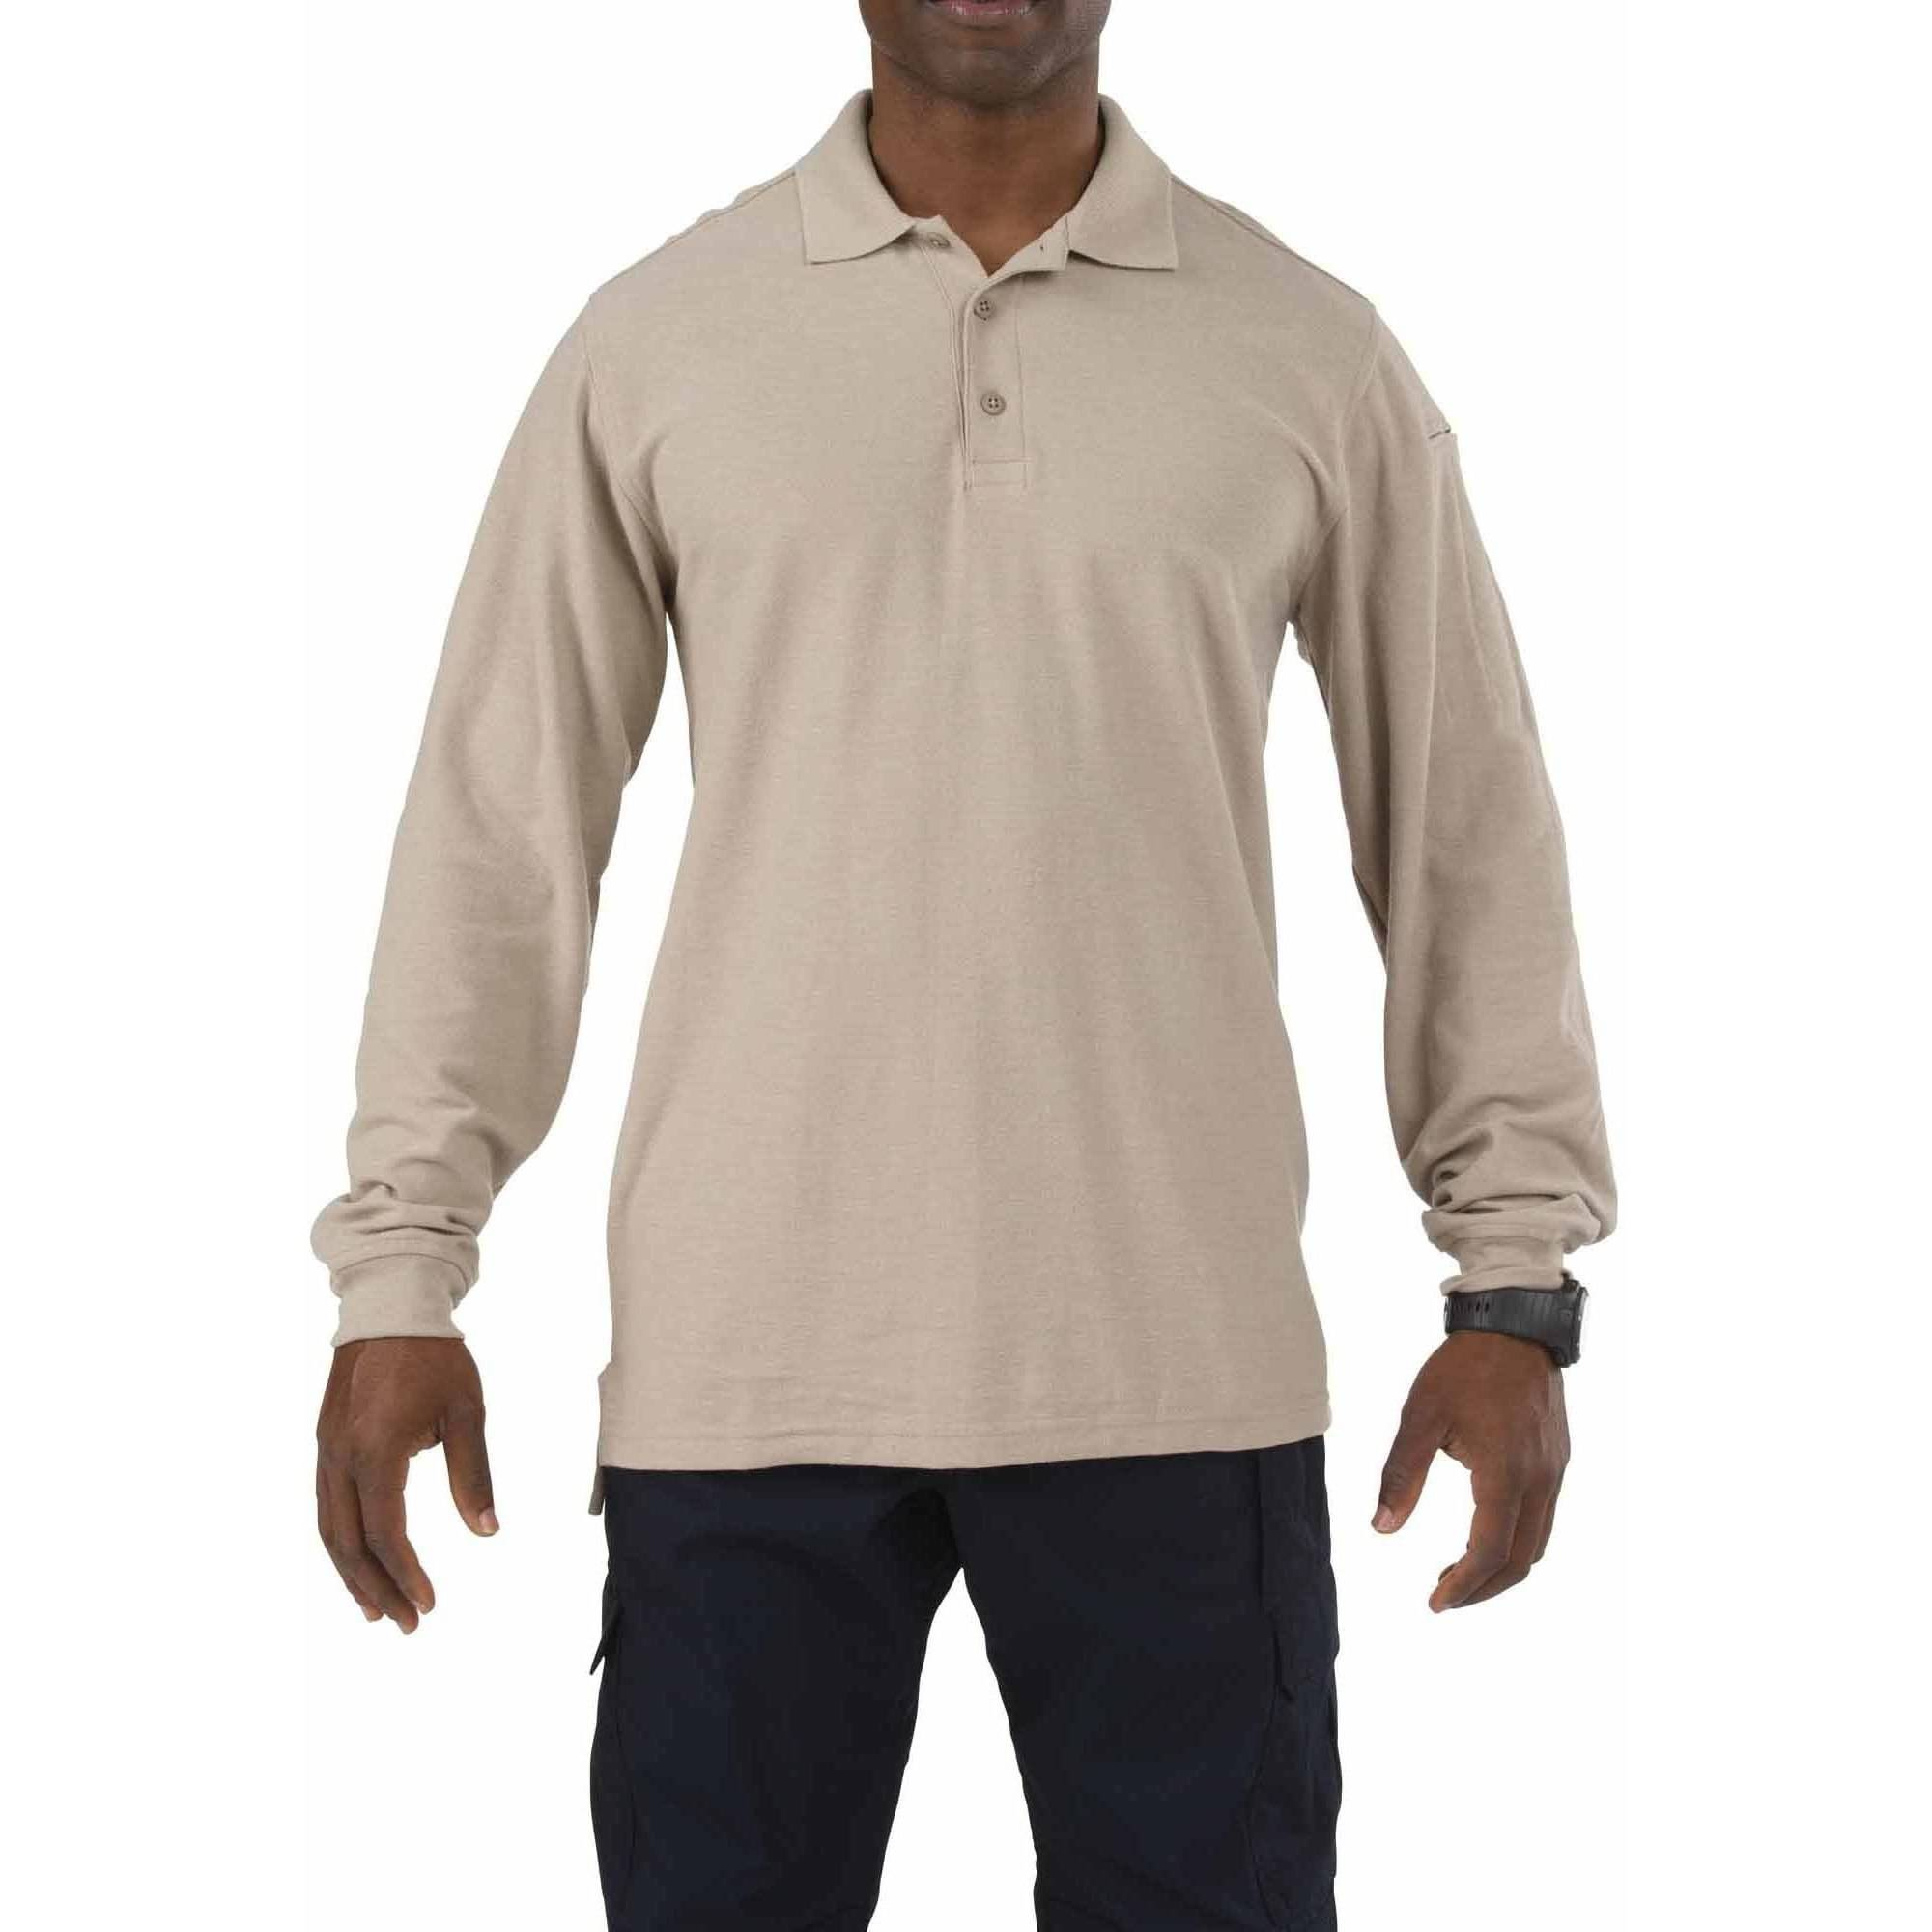 Utility Polo Shirt Long Sleeve, Silver Tan